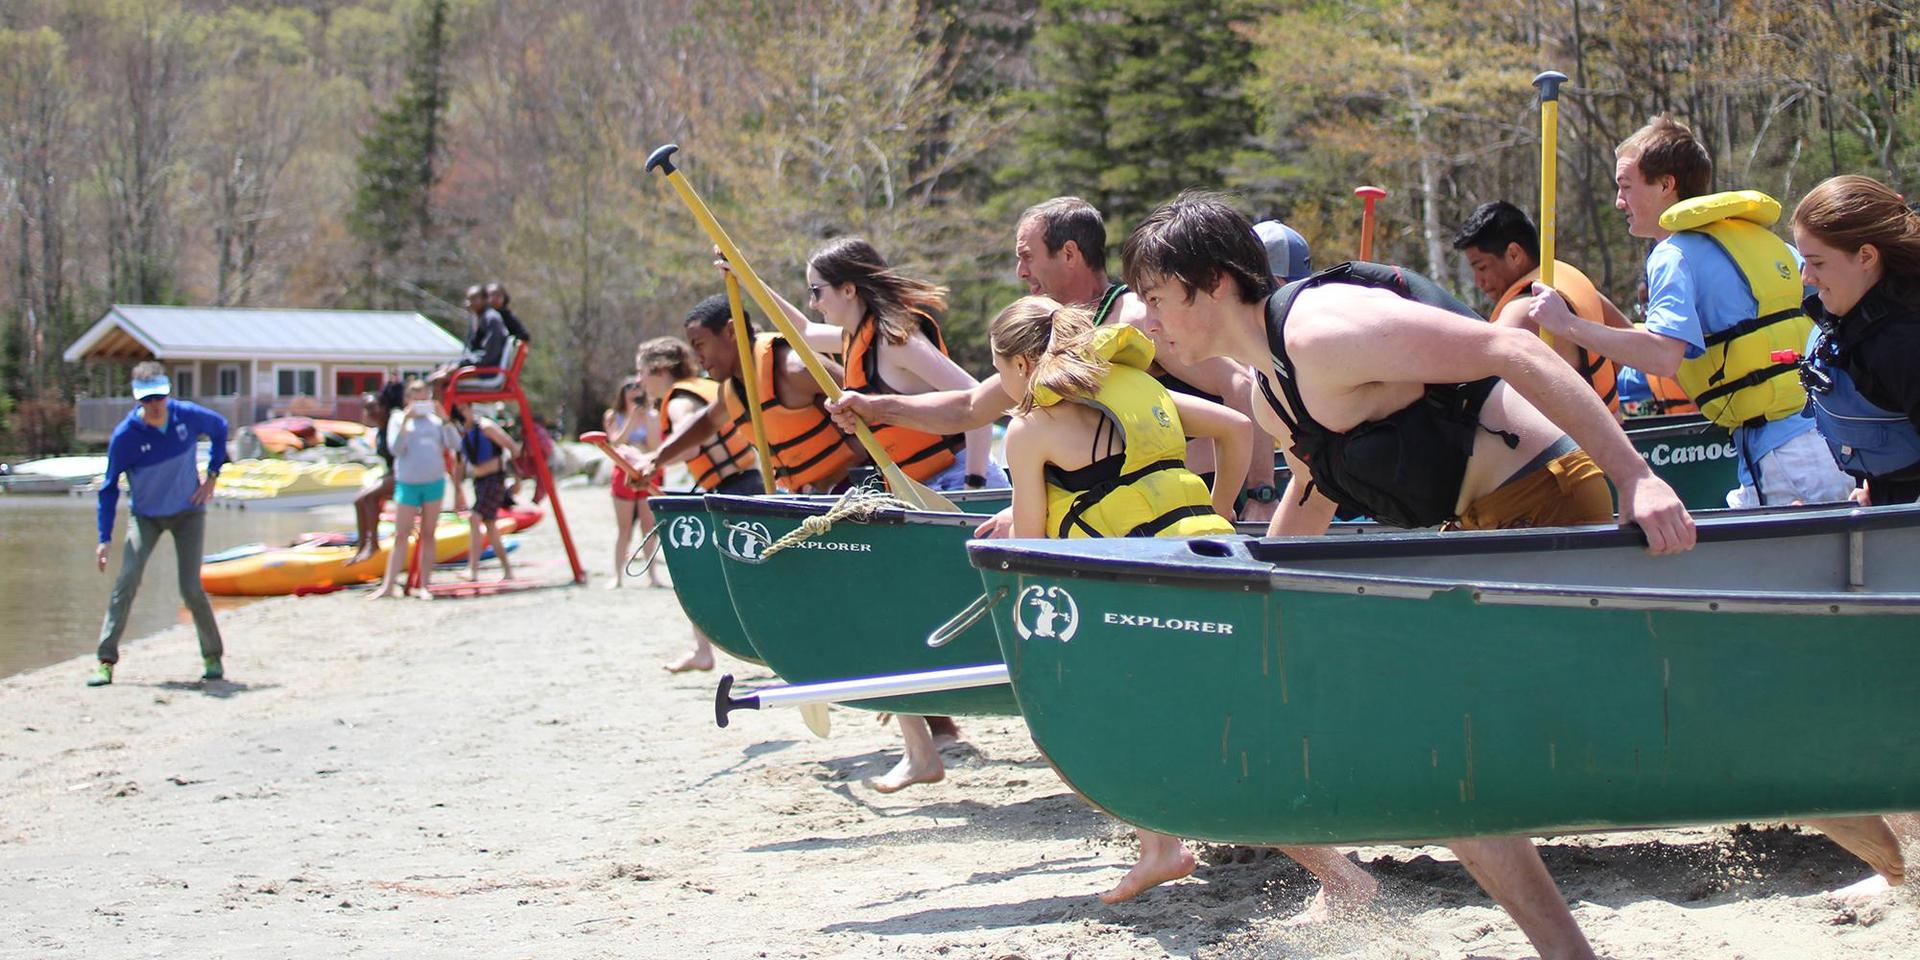 Students and adults racing into the water for a canoe race on Beach Day.